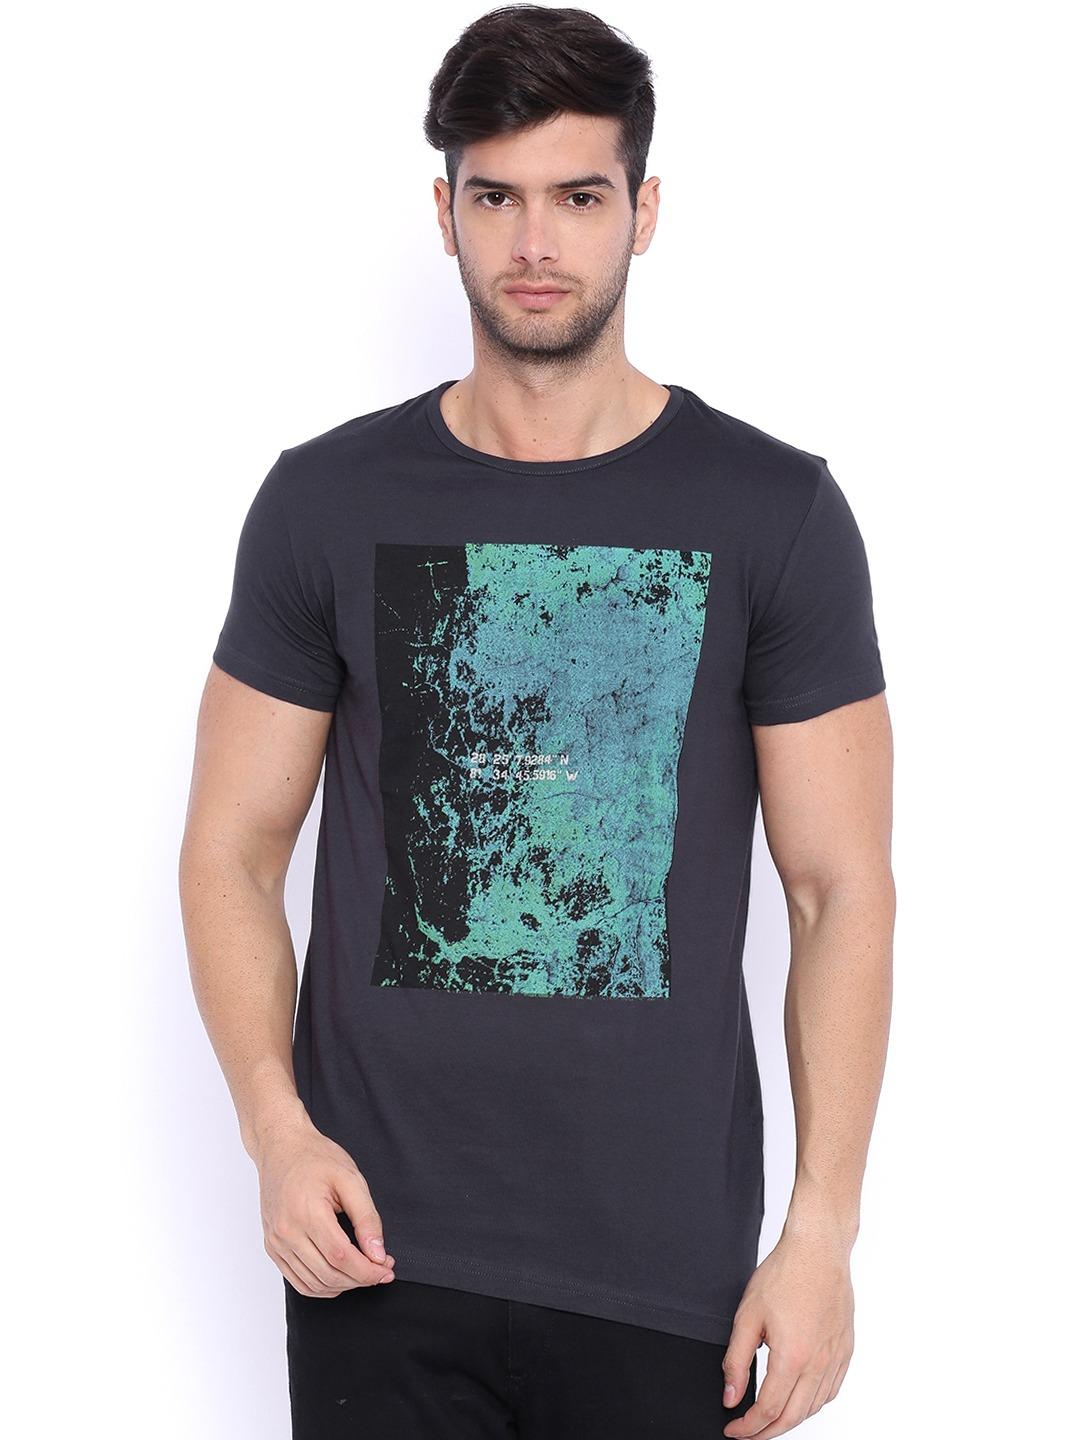 Sheltr Black/Charcoal Placement Graphic Print T-Shirt 1